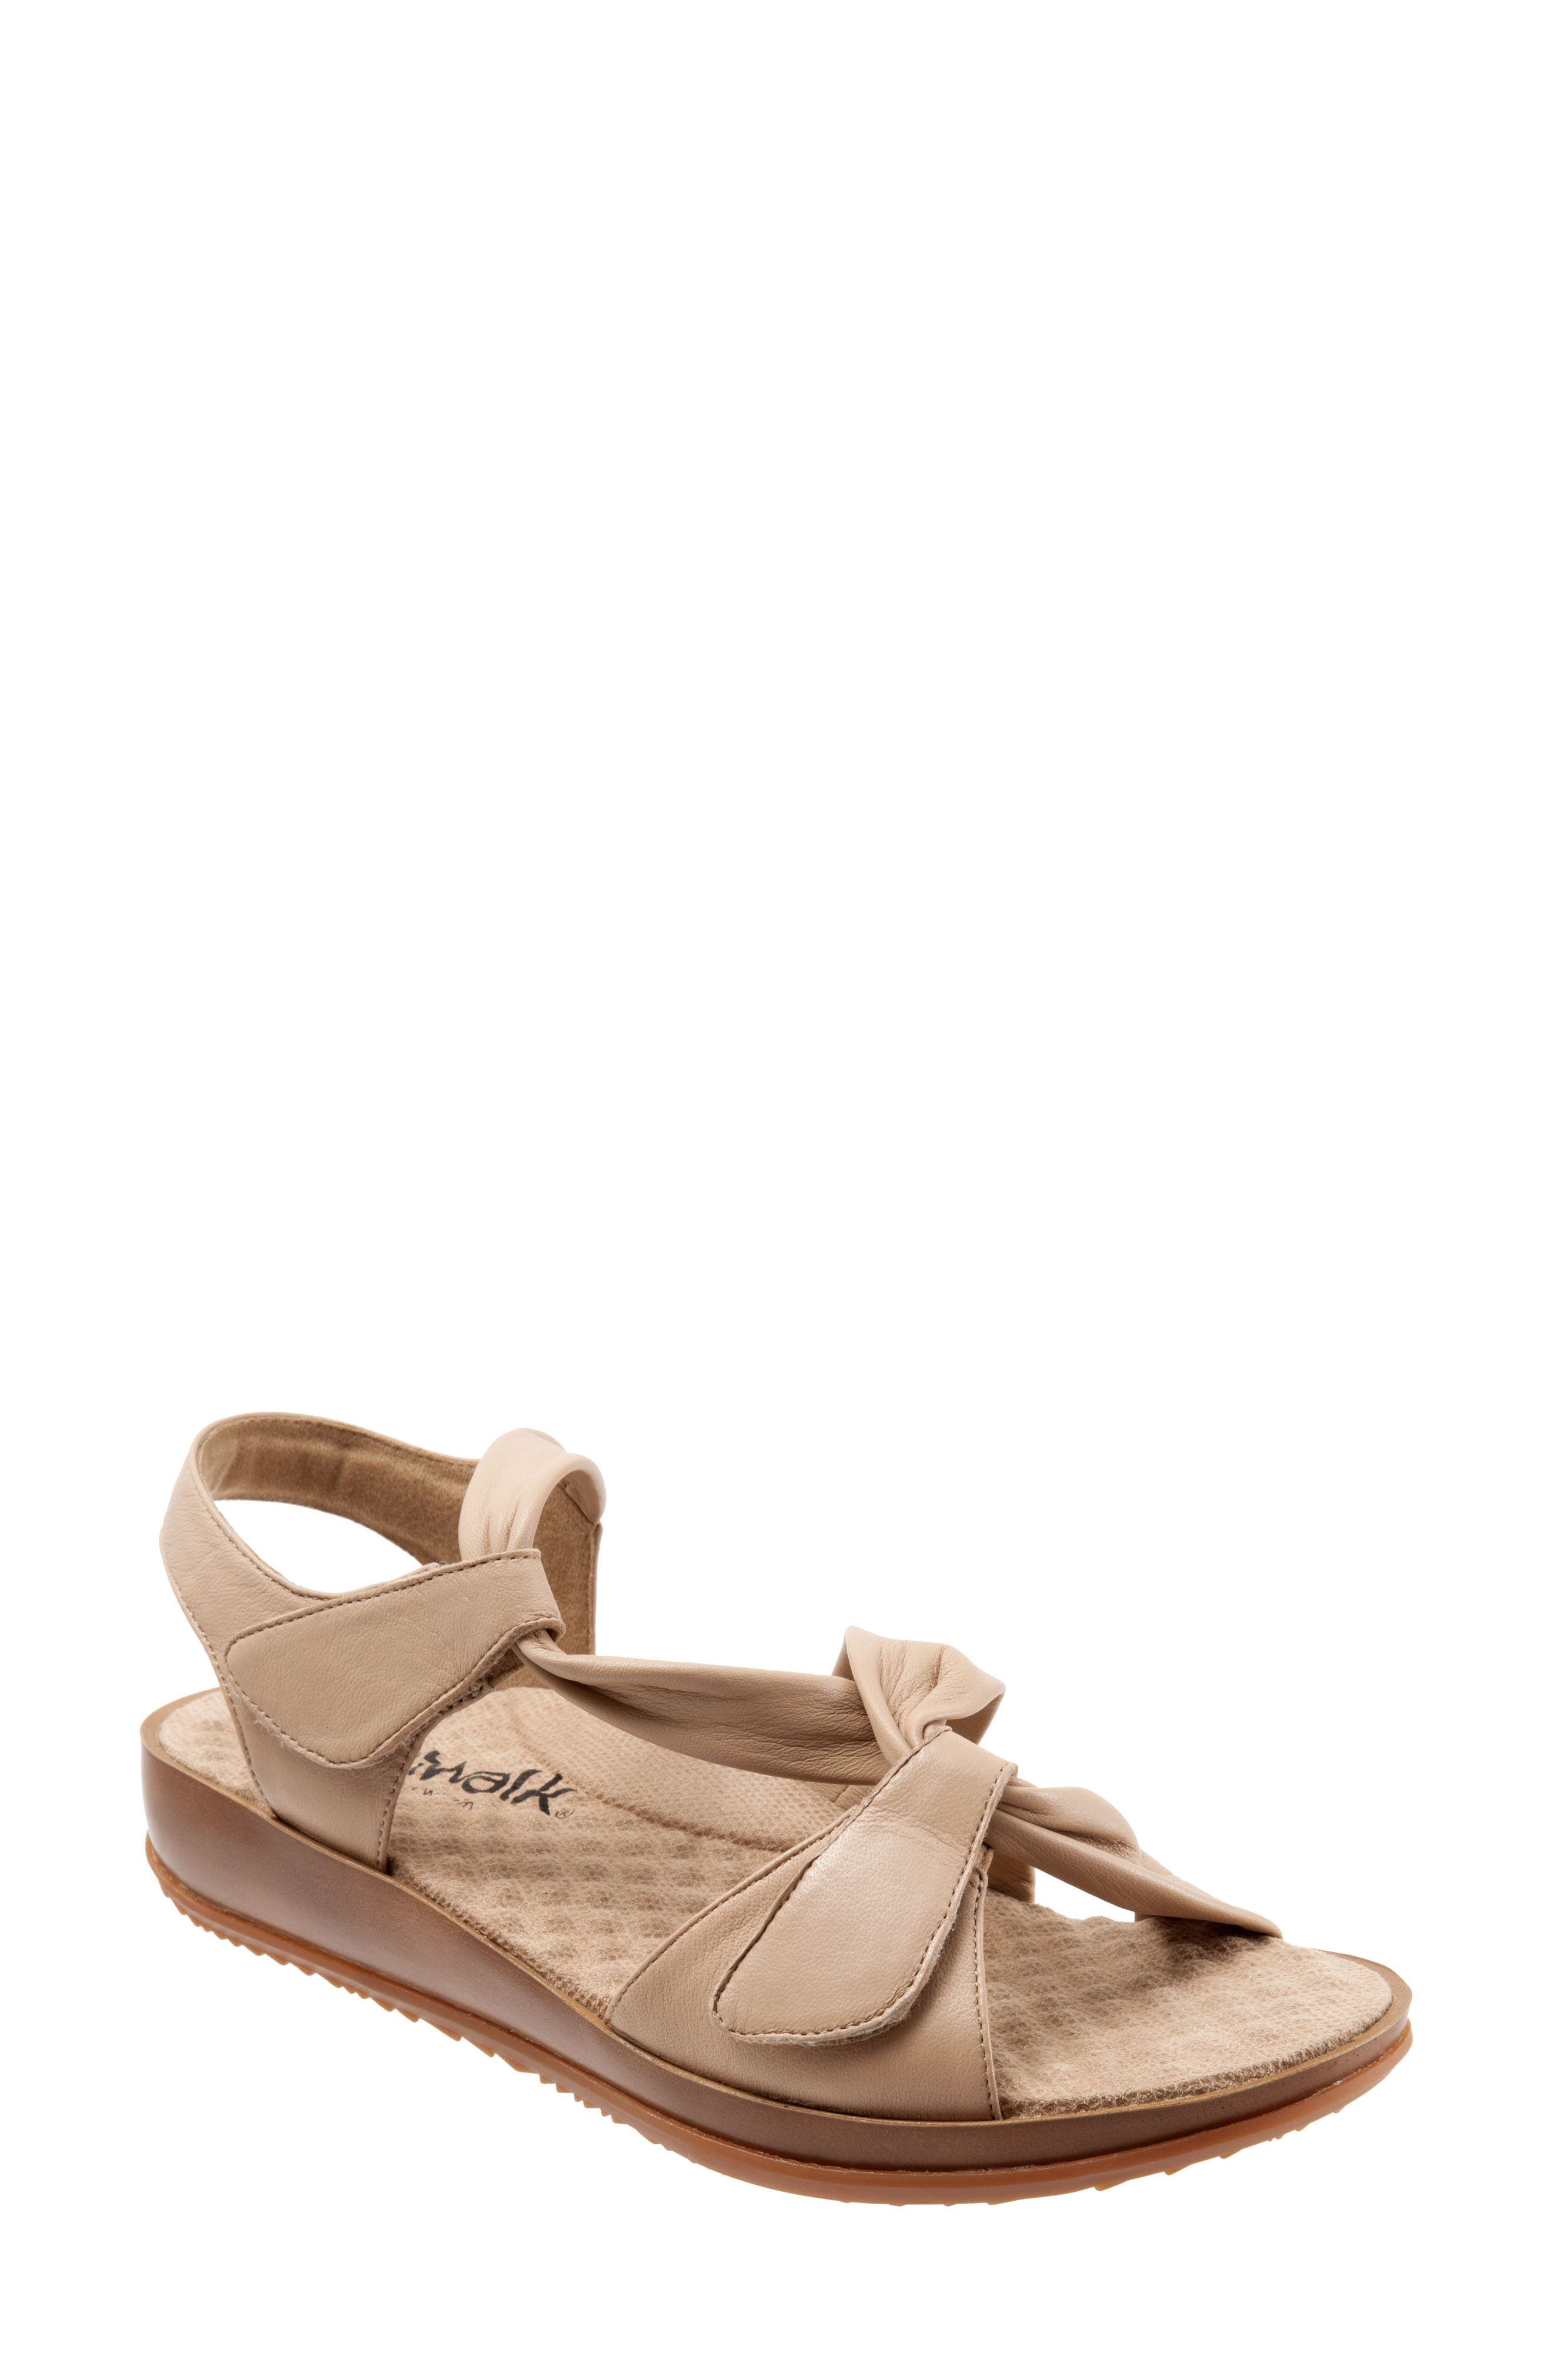 Del Rey Sandal,                             Main thumbnail 1, color,                             Nude Leather